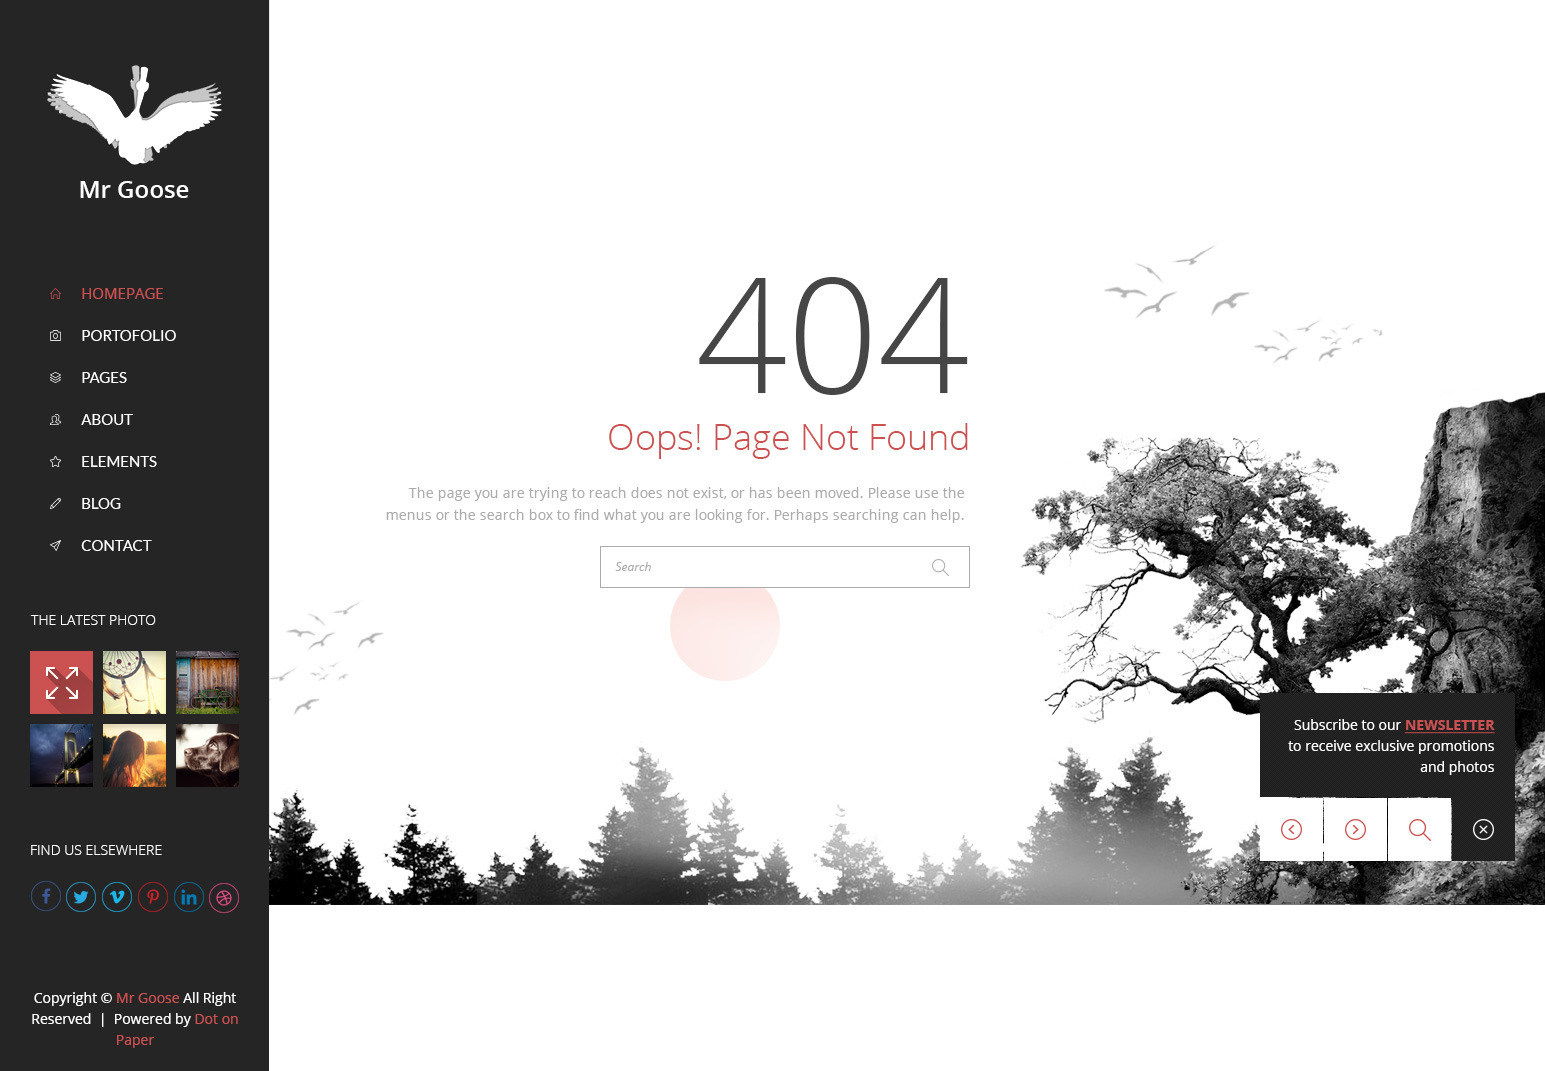 Mr Goose - Creative PSD Template - Desktop - 404